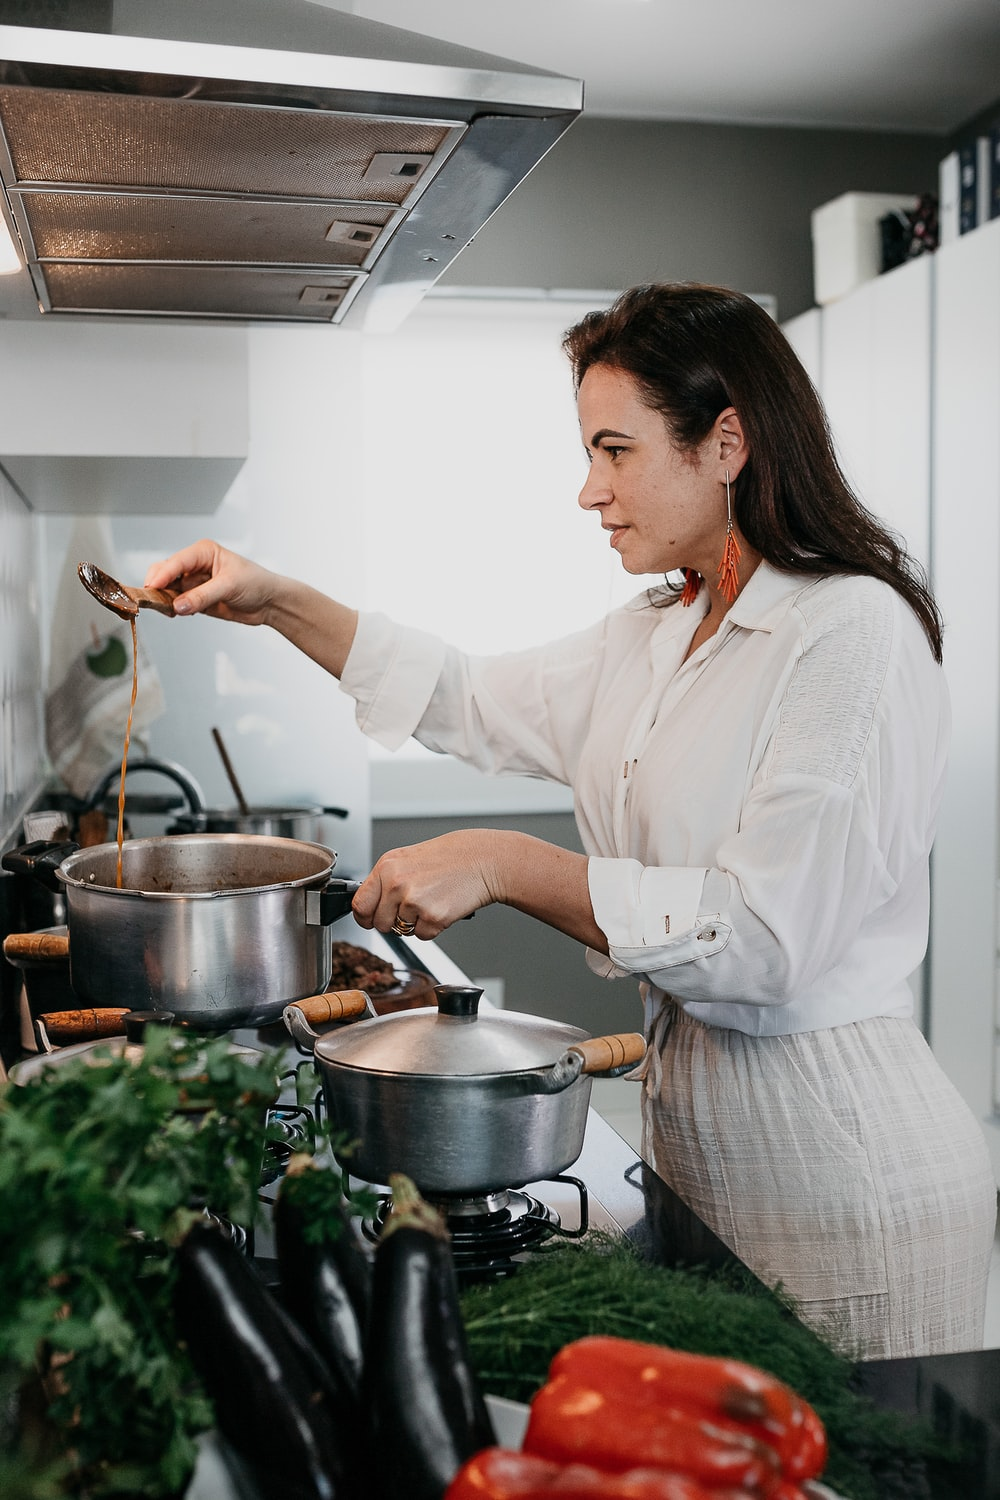 woman in white dress shirt holding stainless steel cooking pot